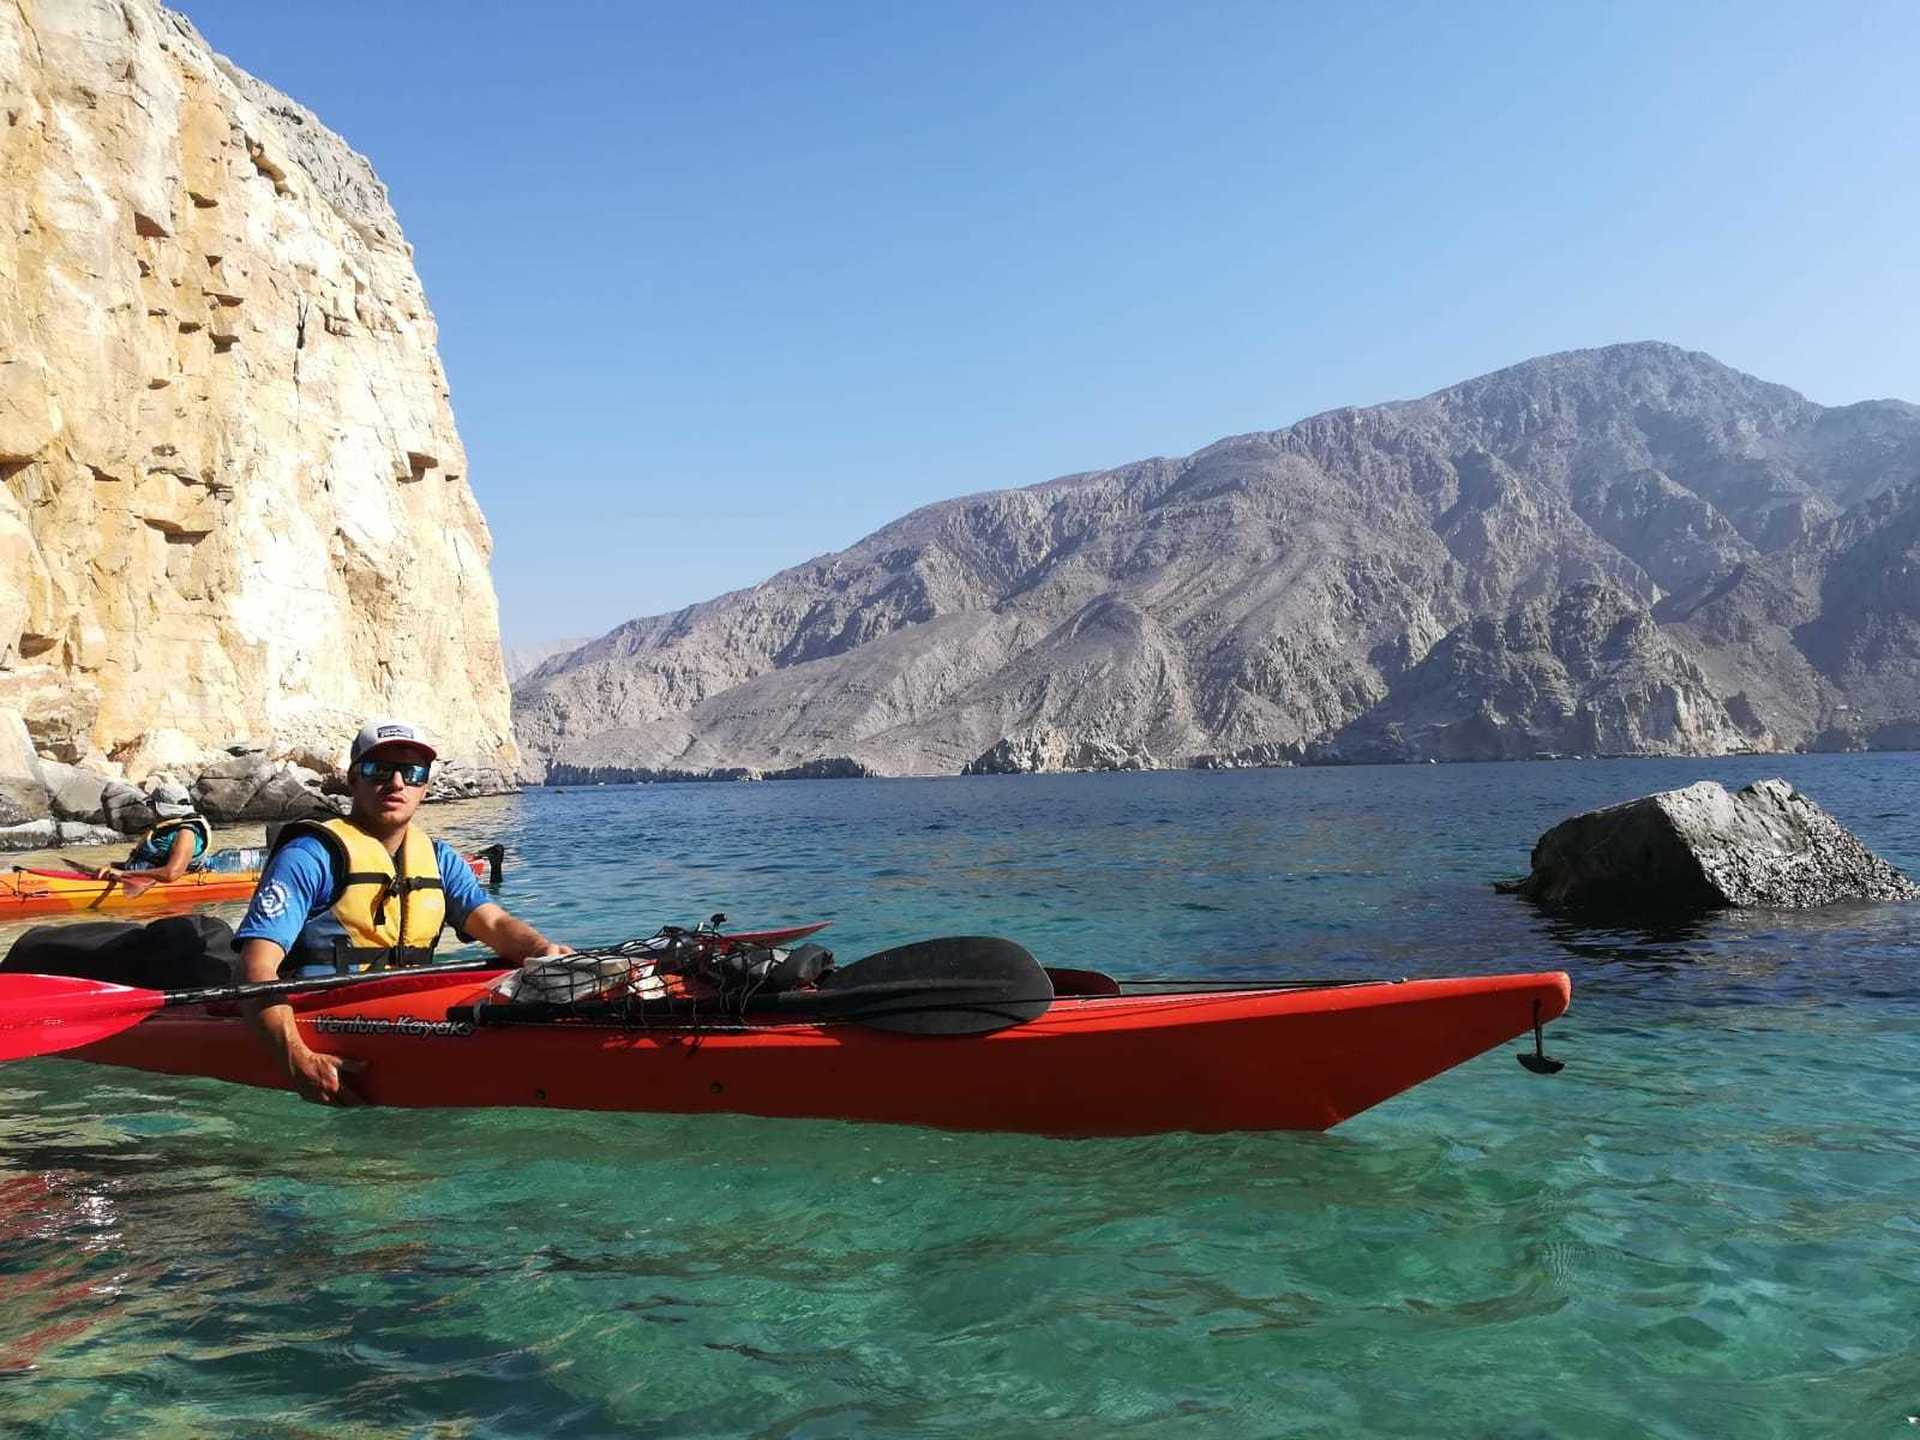 Our guide in Oman